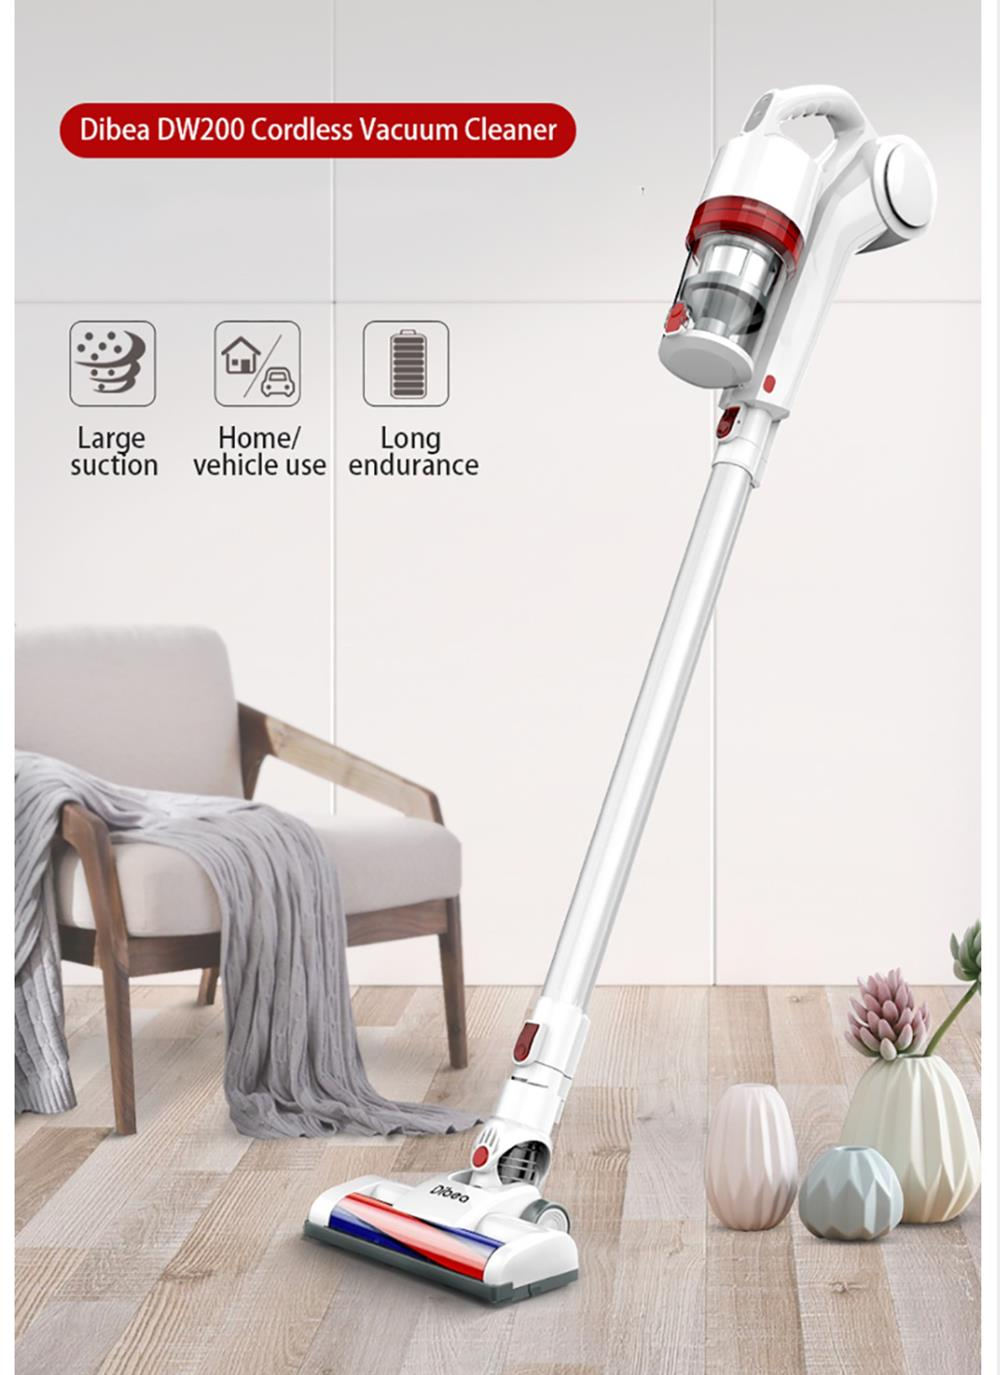 Dibea DW200 Cordless Vacuum Cleaner 10000Pa Strong Suction With Wall Hanging Rack